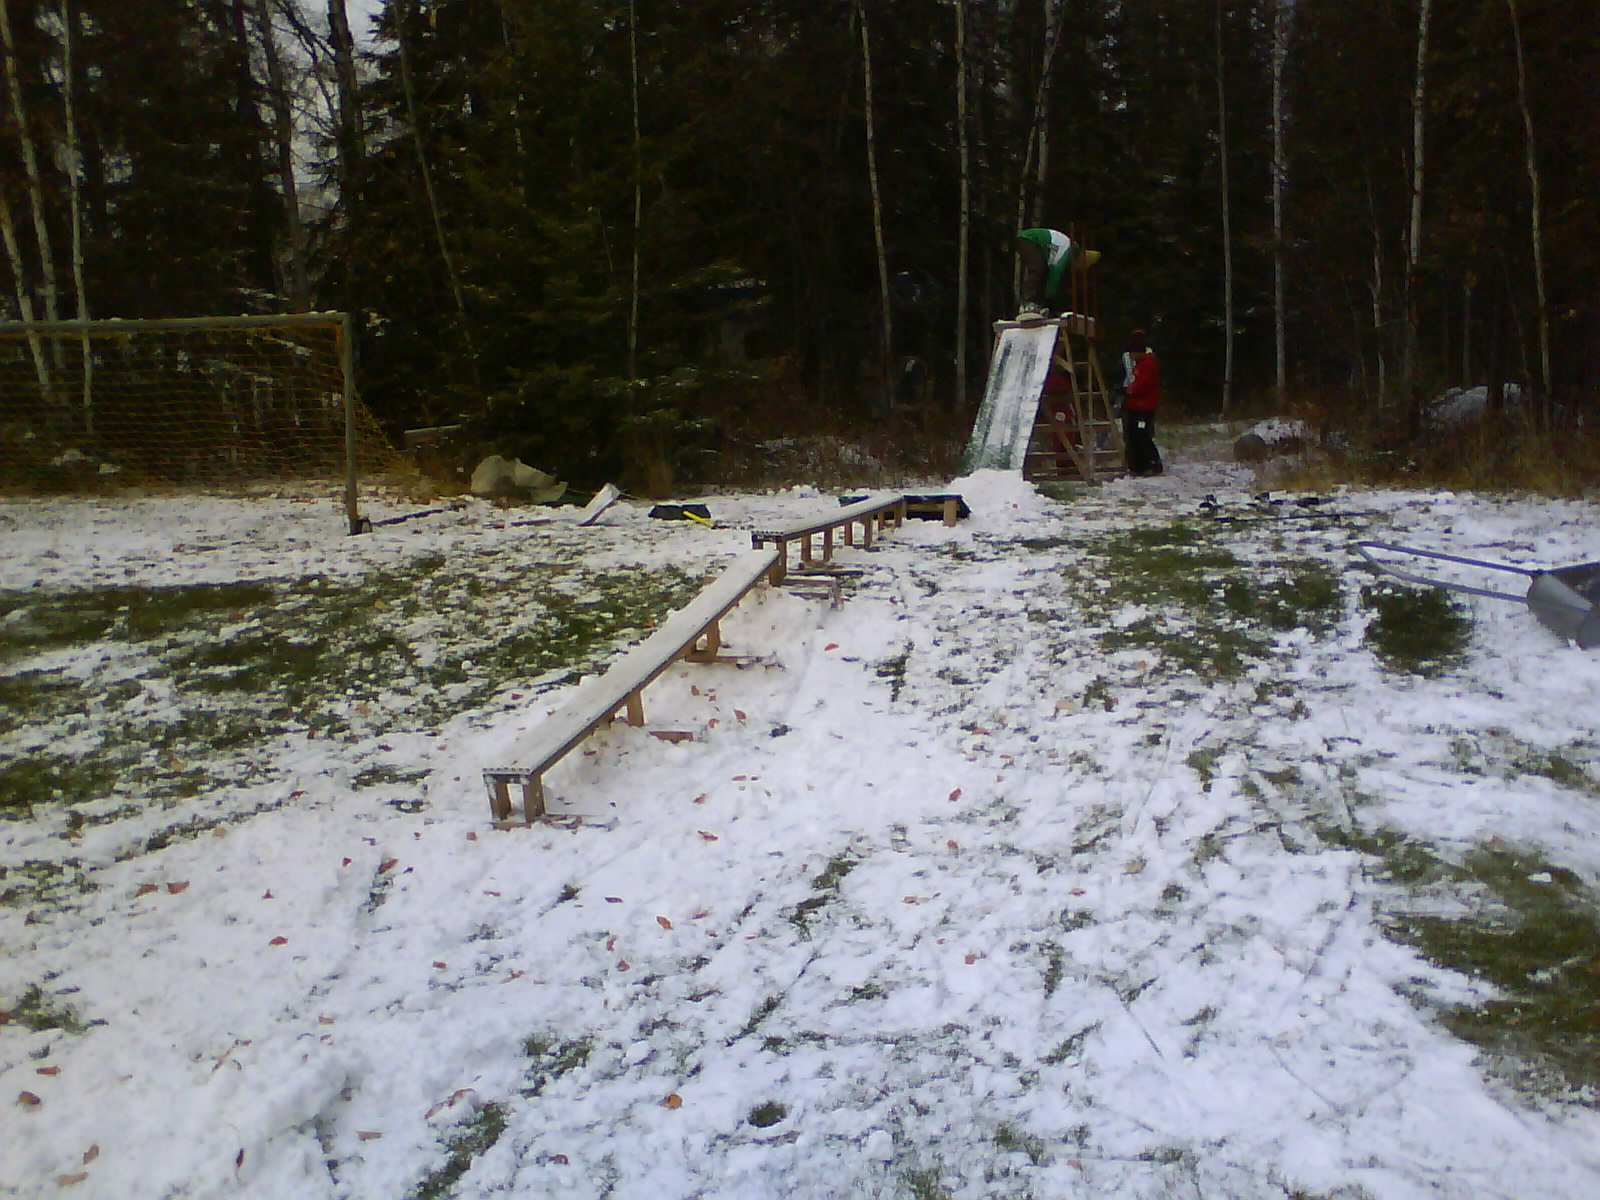 Rail we set up with natural snow fall